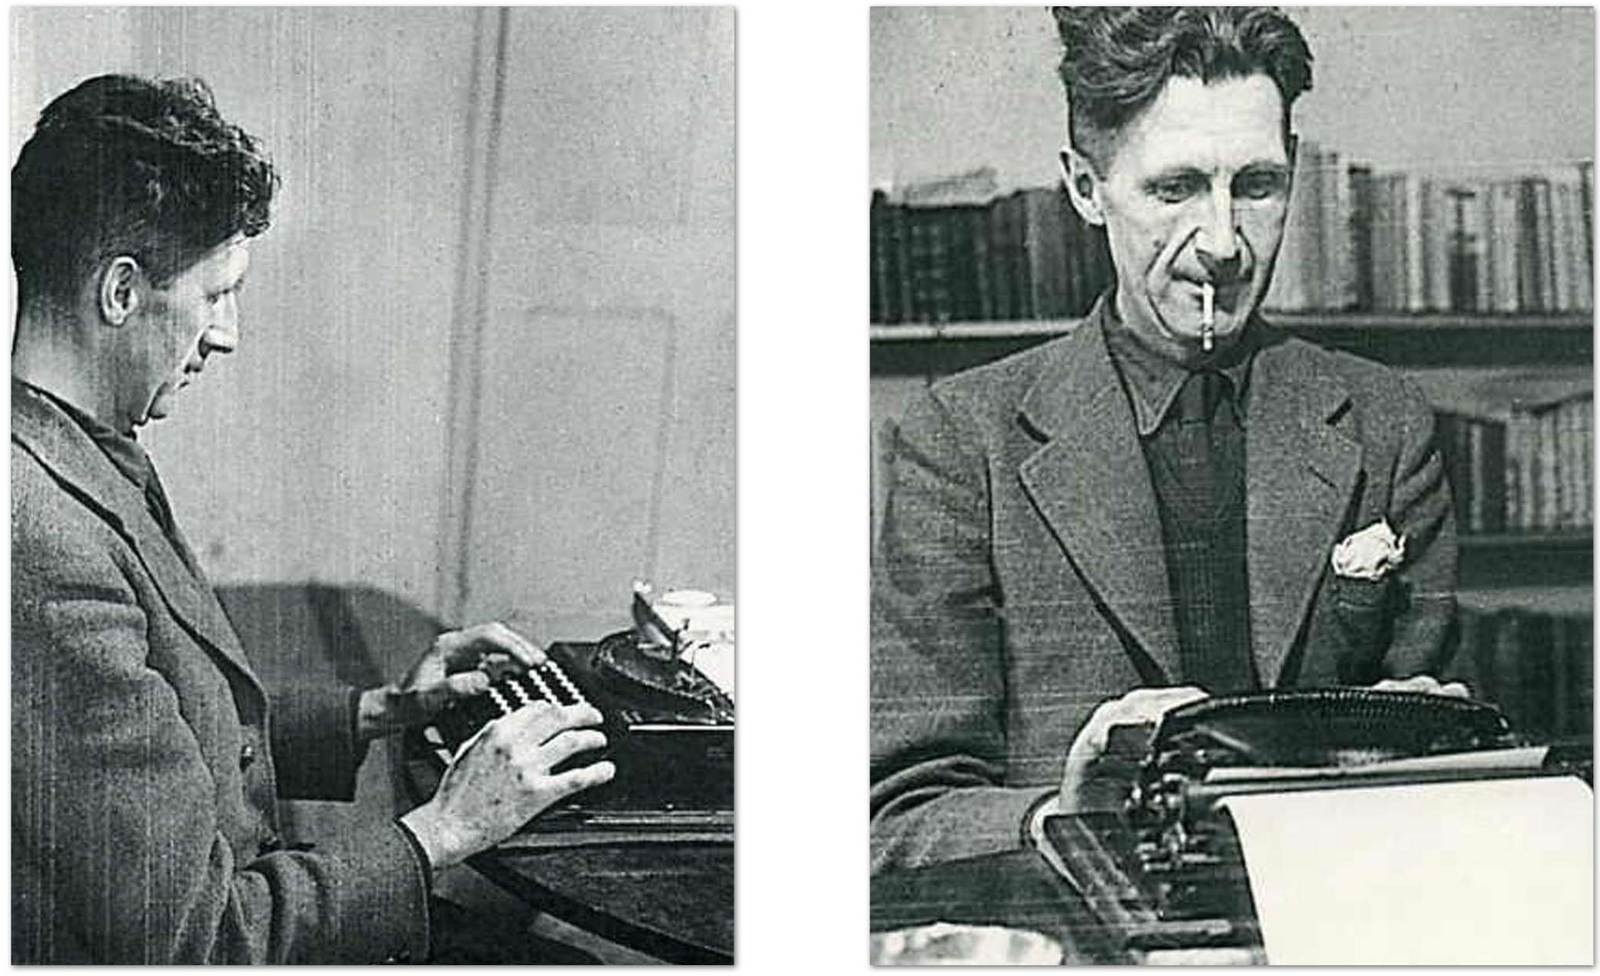 the life and writing of george orwell George orwell began his writing career as a journalist (view the bibliography for more information) this style is scene in his books he doesn't use fanciful metaphors and flowery language to depict specific scenes for example in.